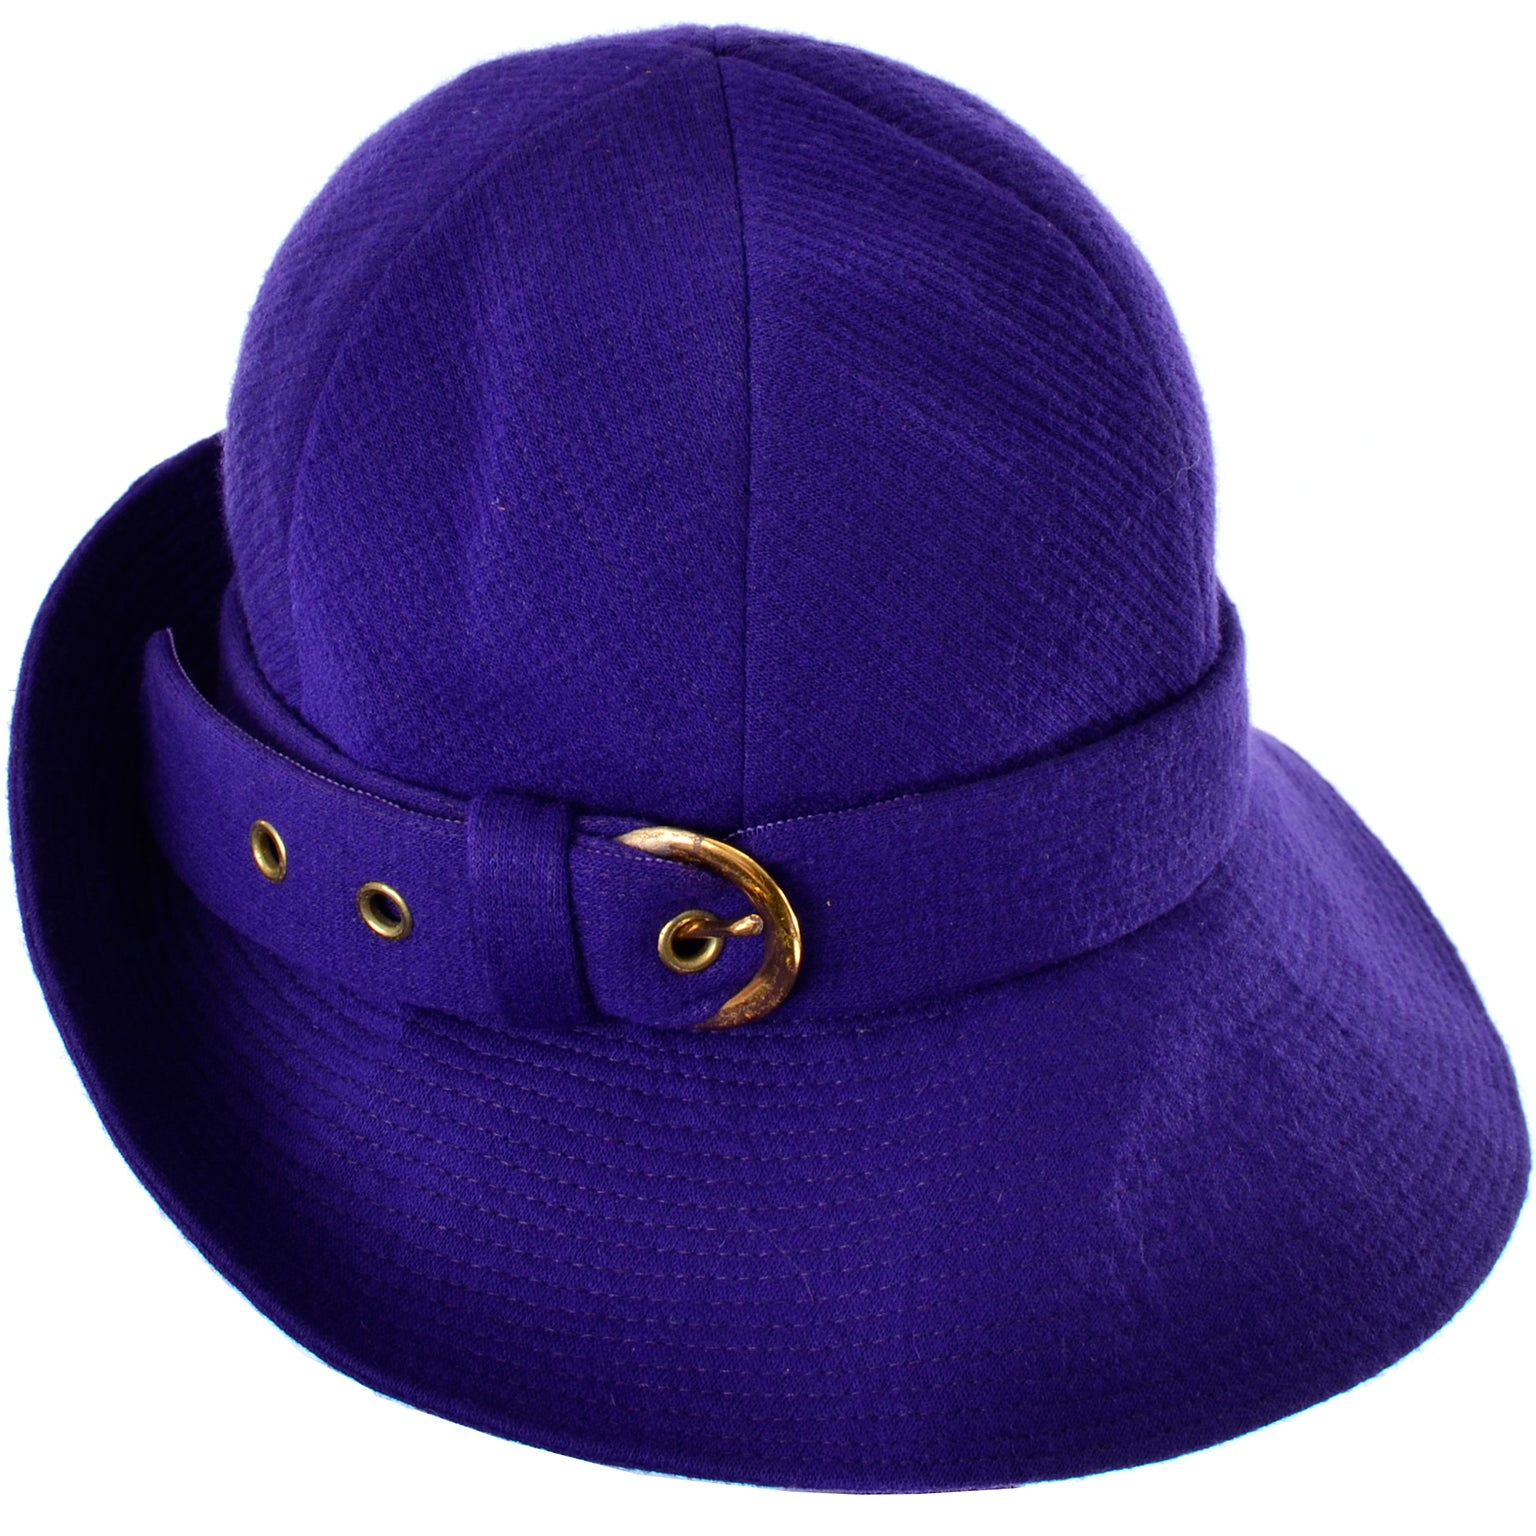 3883dbad904a5 1960s YSL Vintage Purple Wool Hat Designed by Yves Saint Laurent 22